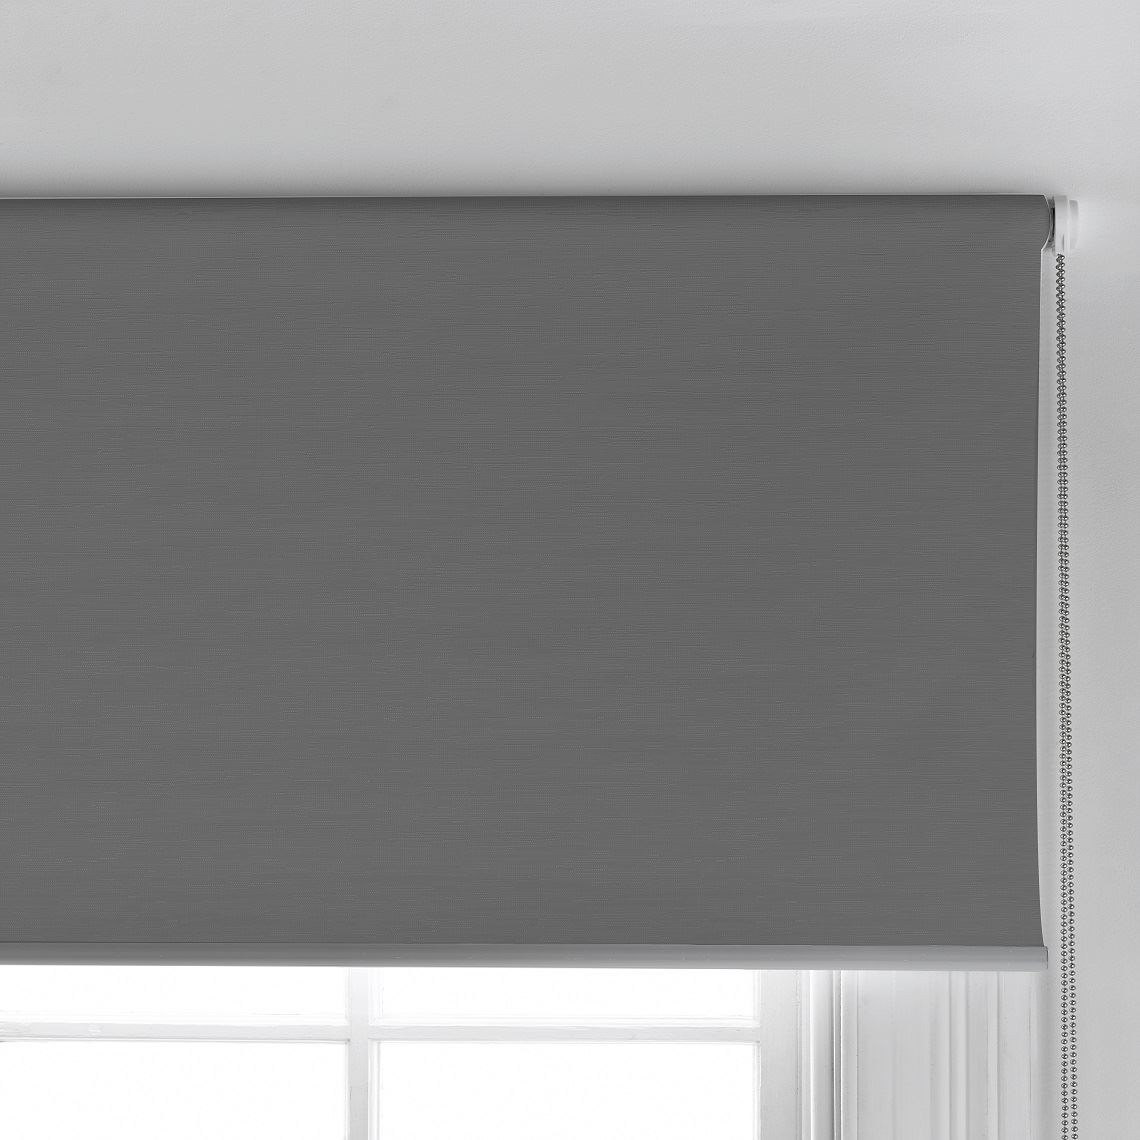 Ashcroft Roller Blind Size W 120cm x D 0cm x H 210cm in Charcoal 100% Polyester Freedom by Freedom, a Curtains for sale on Style Sourcebook